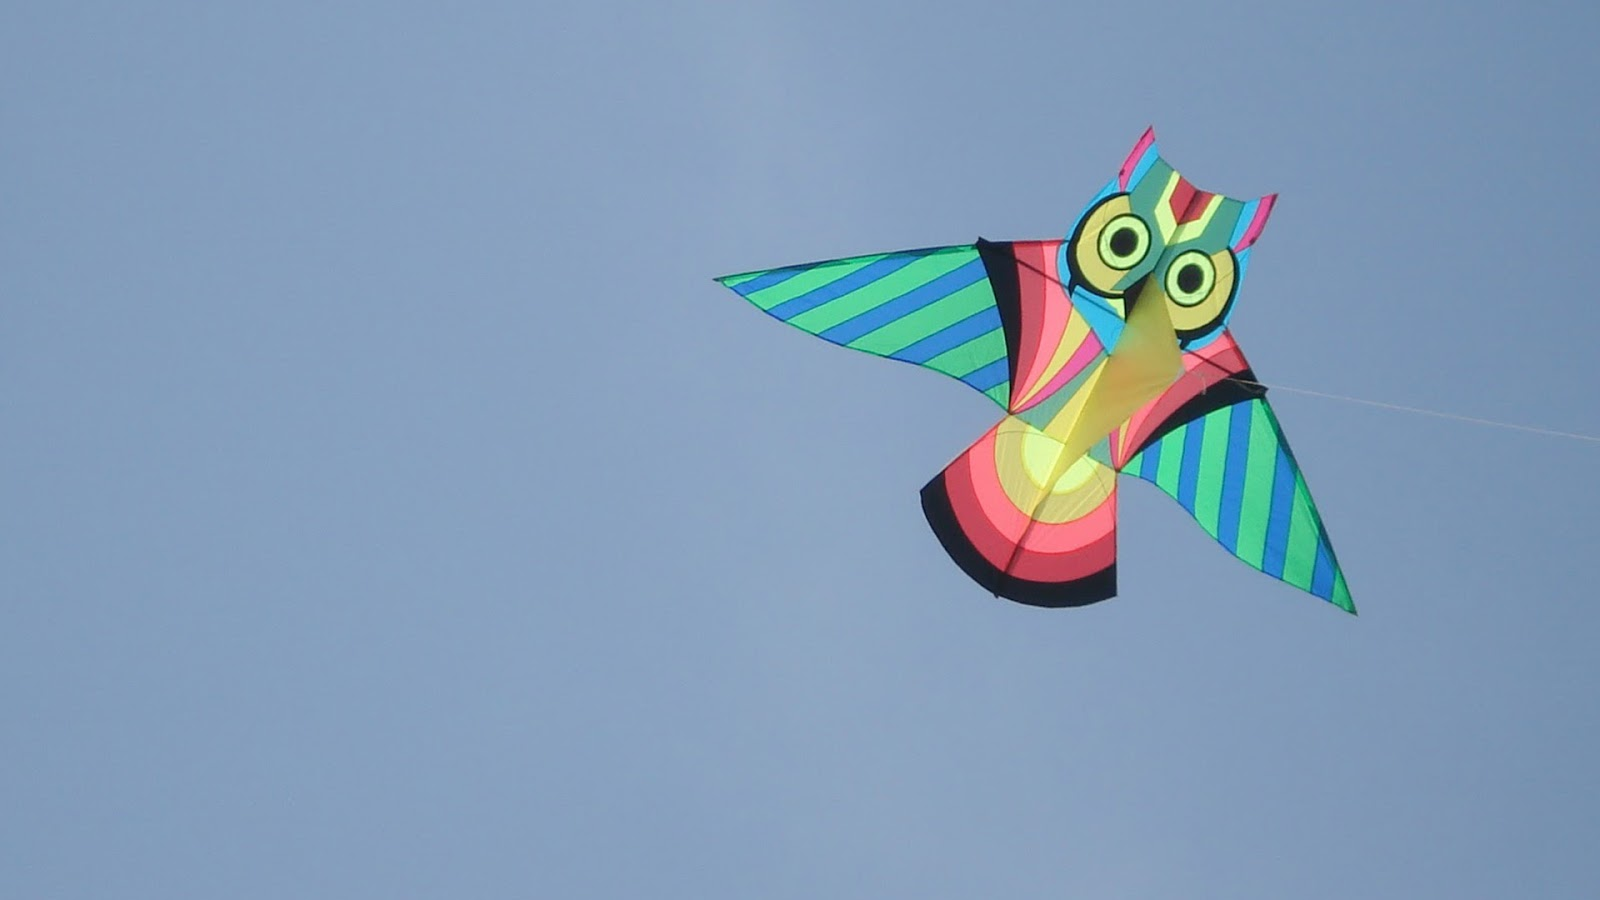 wallpaper kite cartoon - photo #23